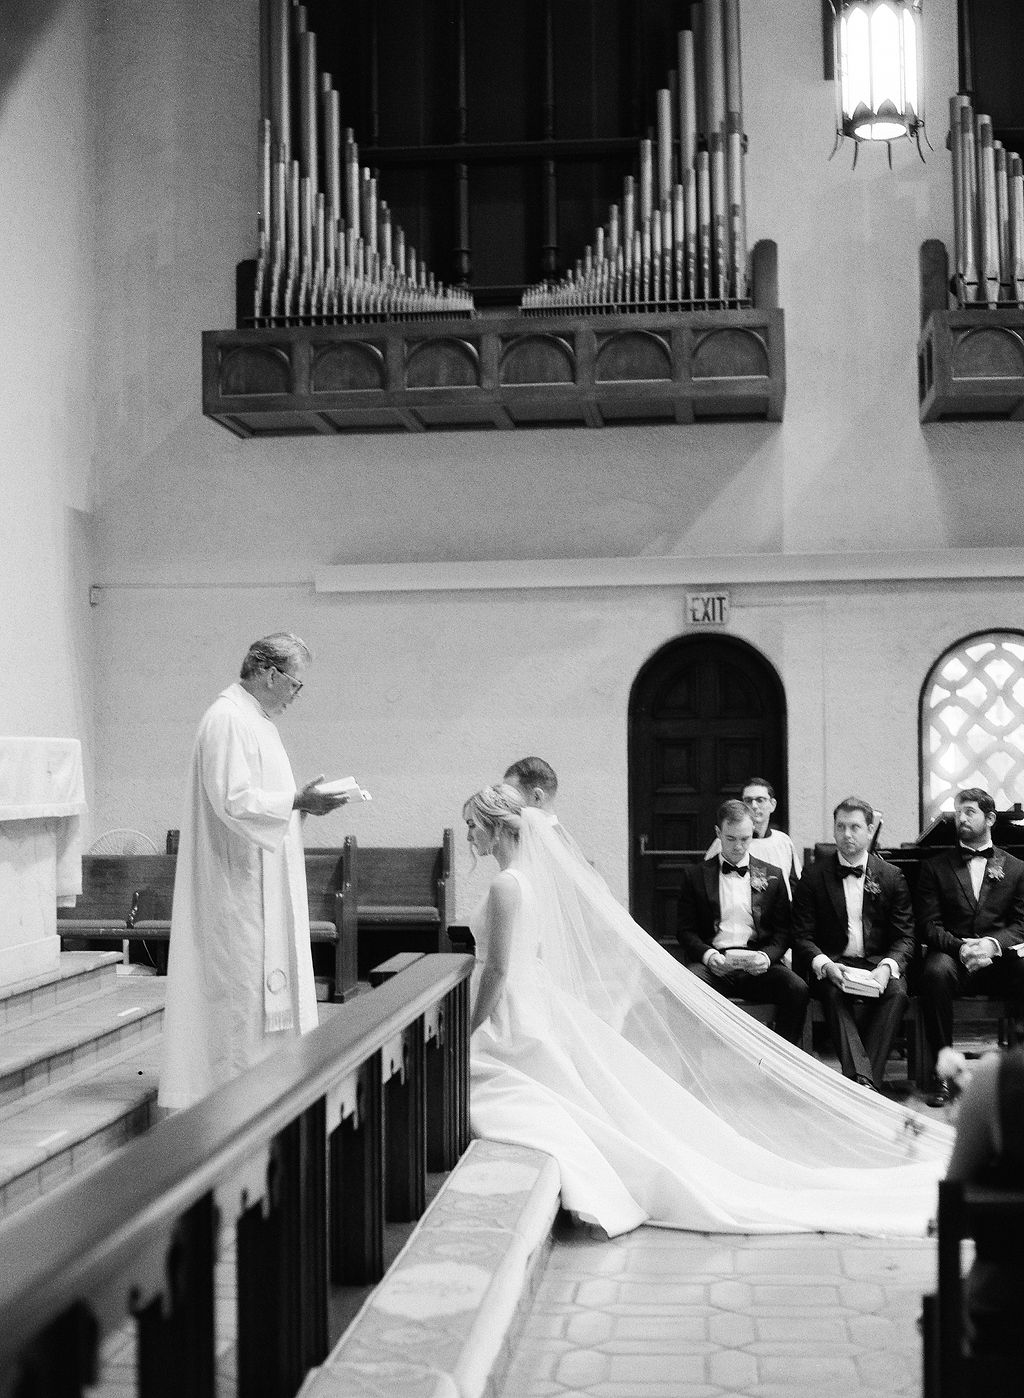 bride and groom kneeling during religious wedding ceremony in church